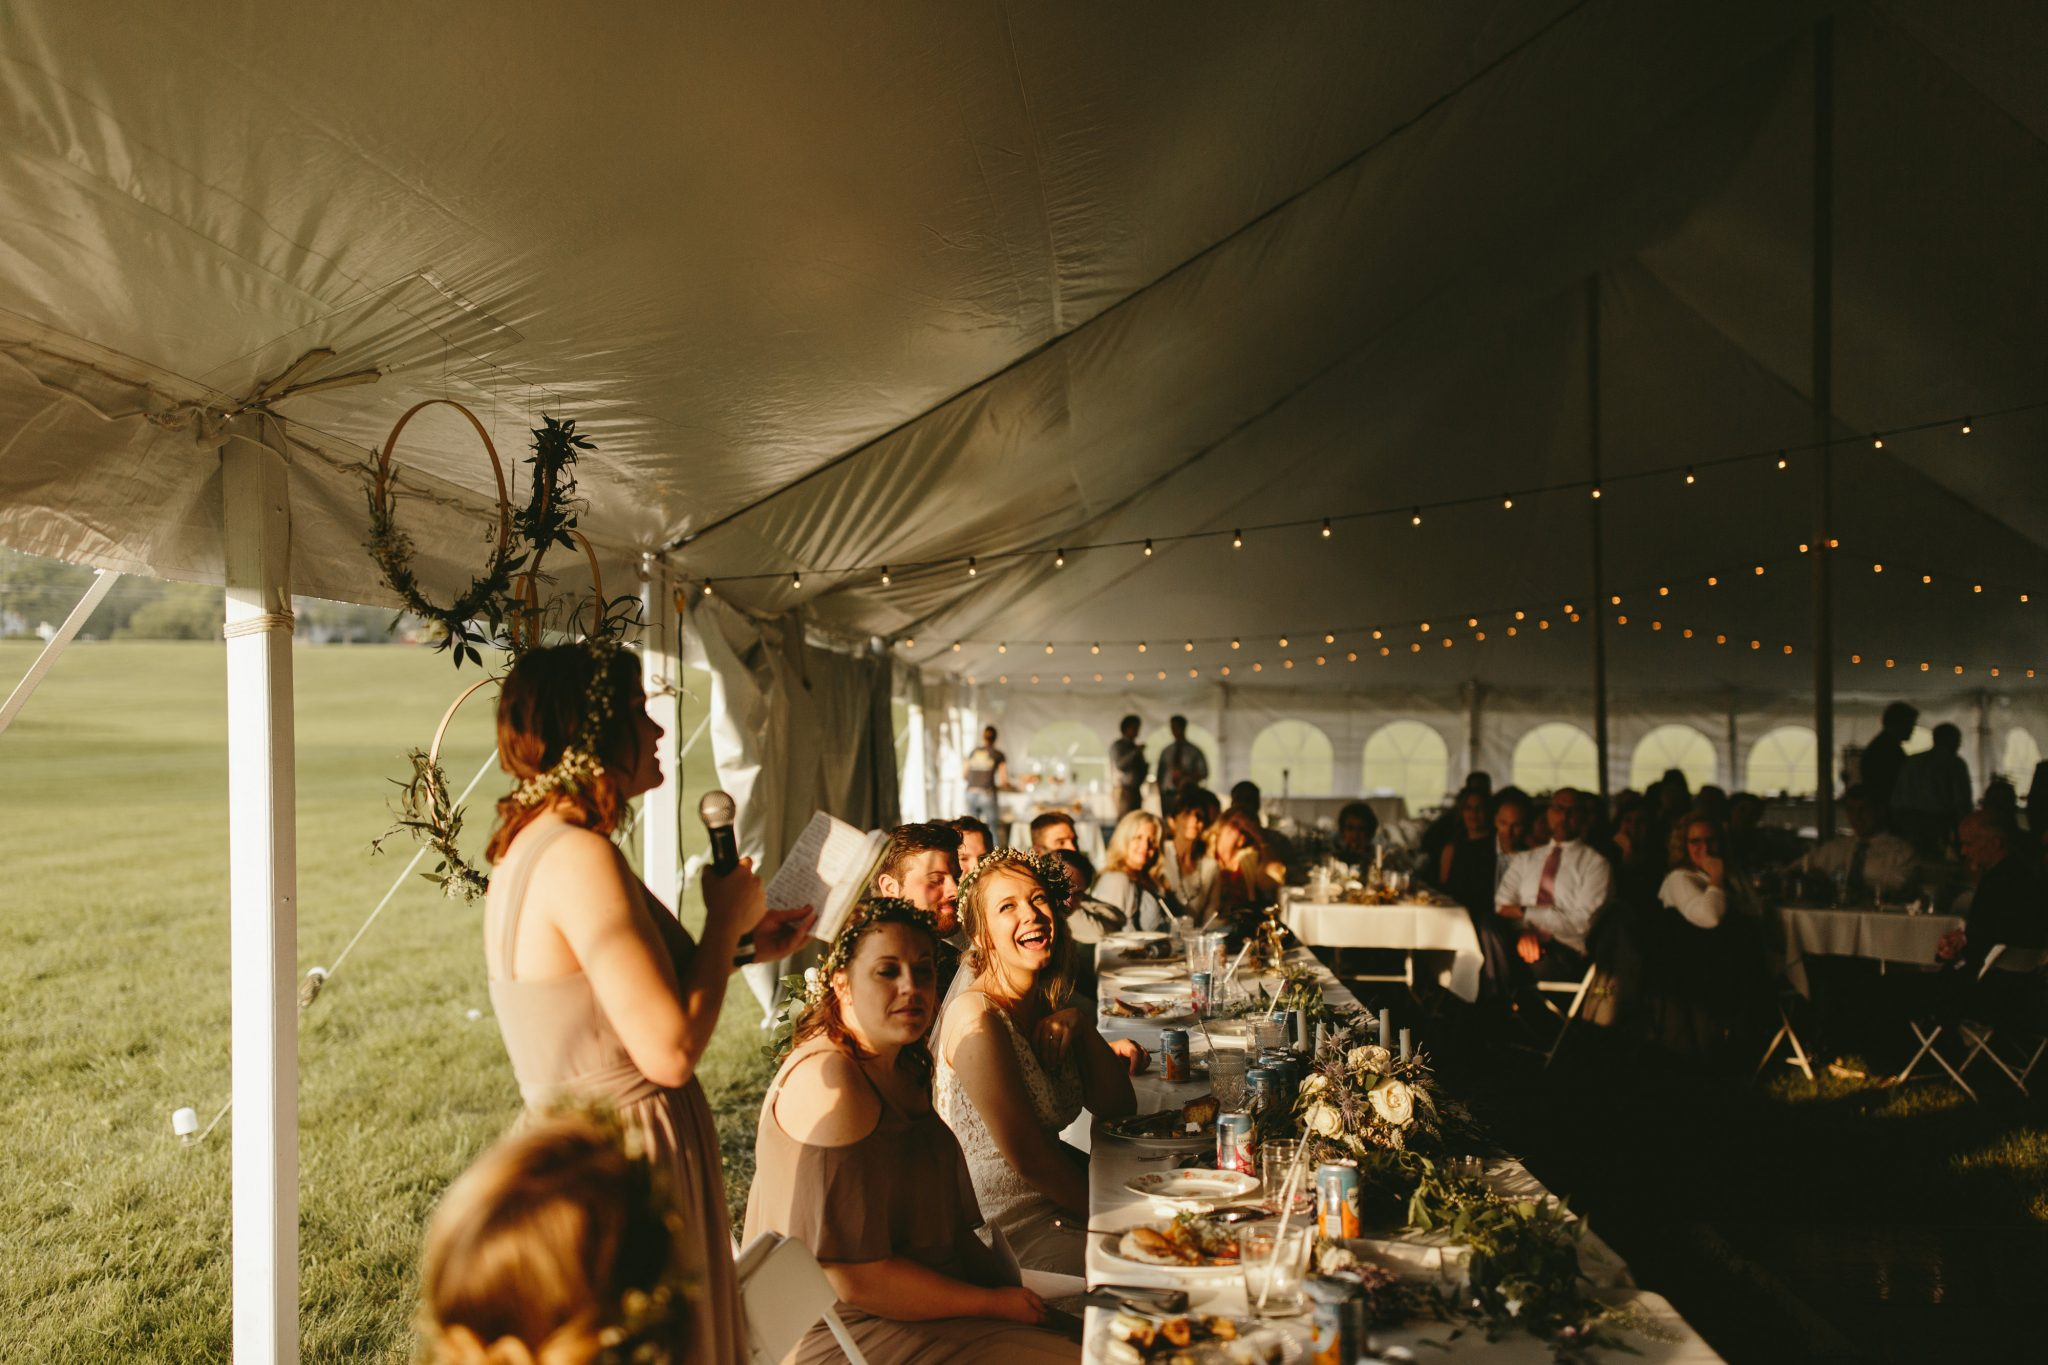 maid of honor speech inspiration, vintage inspired wedding reception, gold wedding accents,wedding reception tent inspiration, backyard wedding reception ides, outdoor wedding reception, string lit wedding reception, minimalistic reception decor, unique wedding reception decor, vintage inspired wedding decor, unique wedding plates, simple wedding decoration, outdoor wedding ceremony, barn wedding, reception tent,philadelphia documentary wedding photographer,brooklyn wedding photography, Brooklyn wedding, Philadelphia wedding photographer, Philadelphia wedding, Brooklyn new york photographer, unique wedding inspiration, fun wedding photos, romantic wedding, destination wedding photographer, wedding photography inspiration,barn wedding ideas, barn wedding, unique barn wedding inspiration